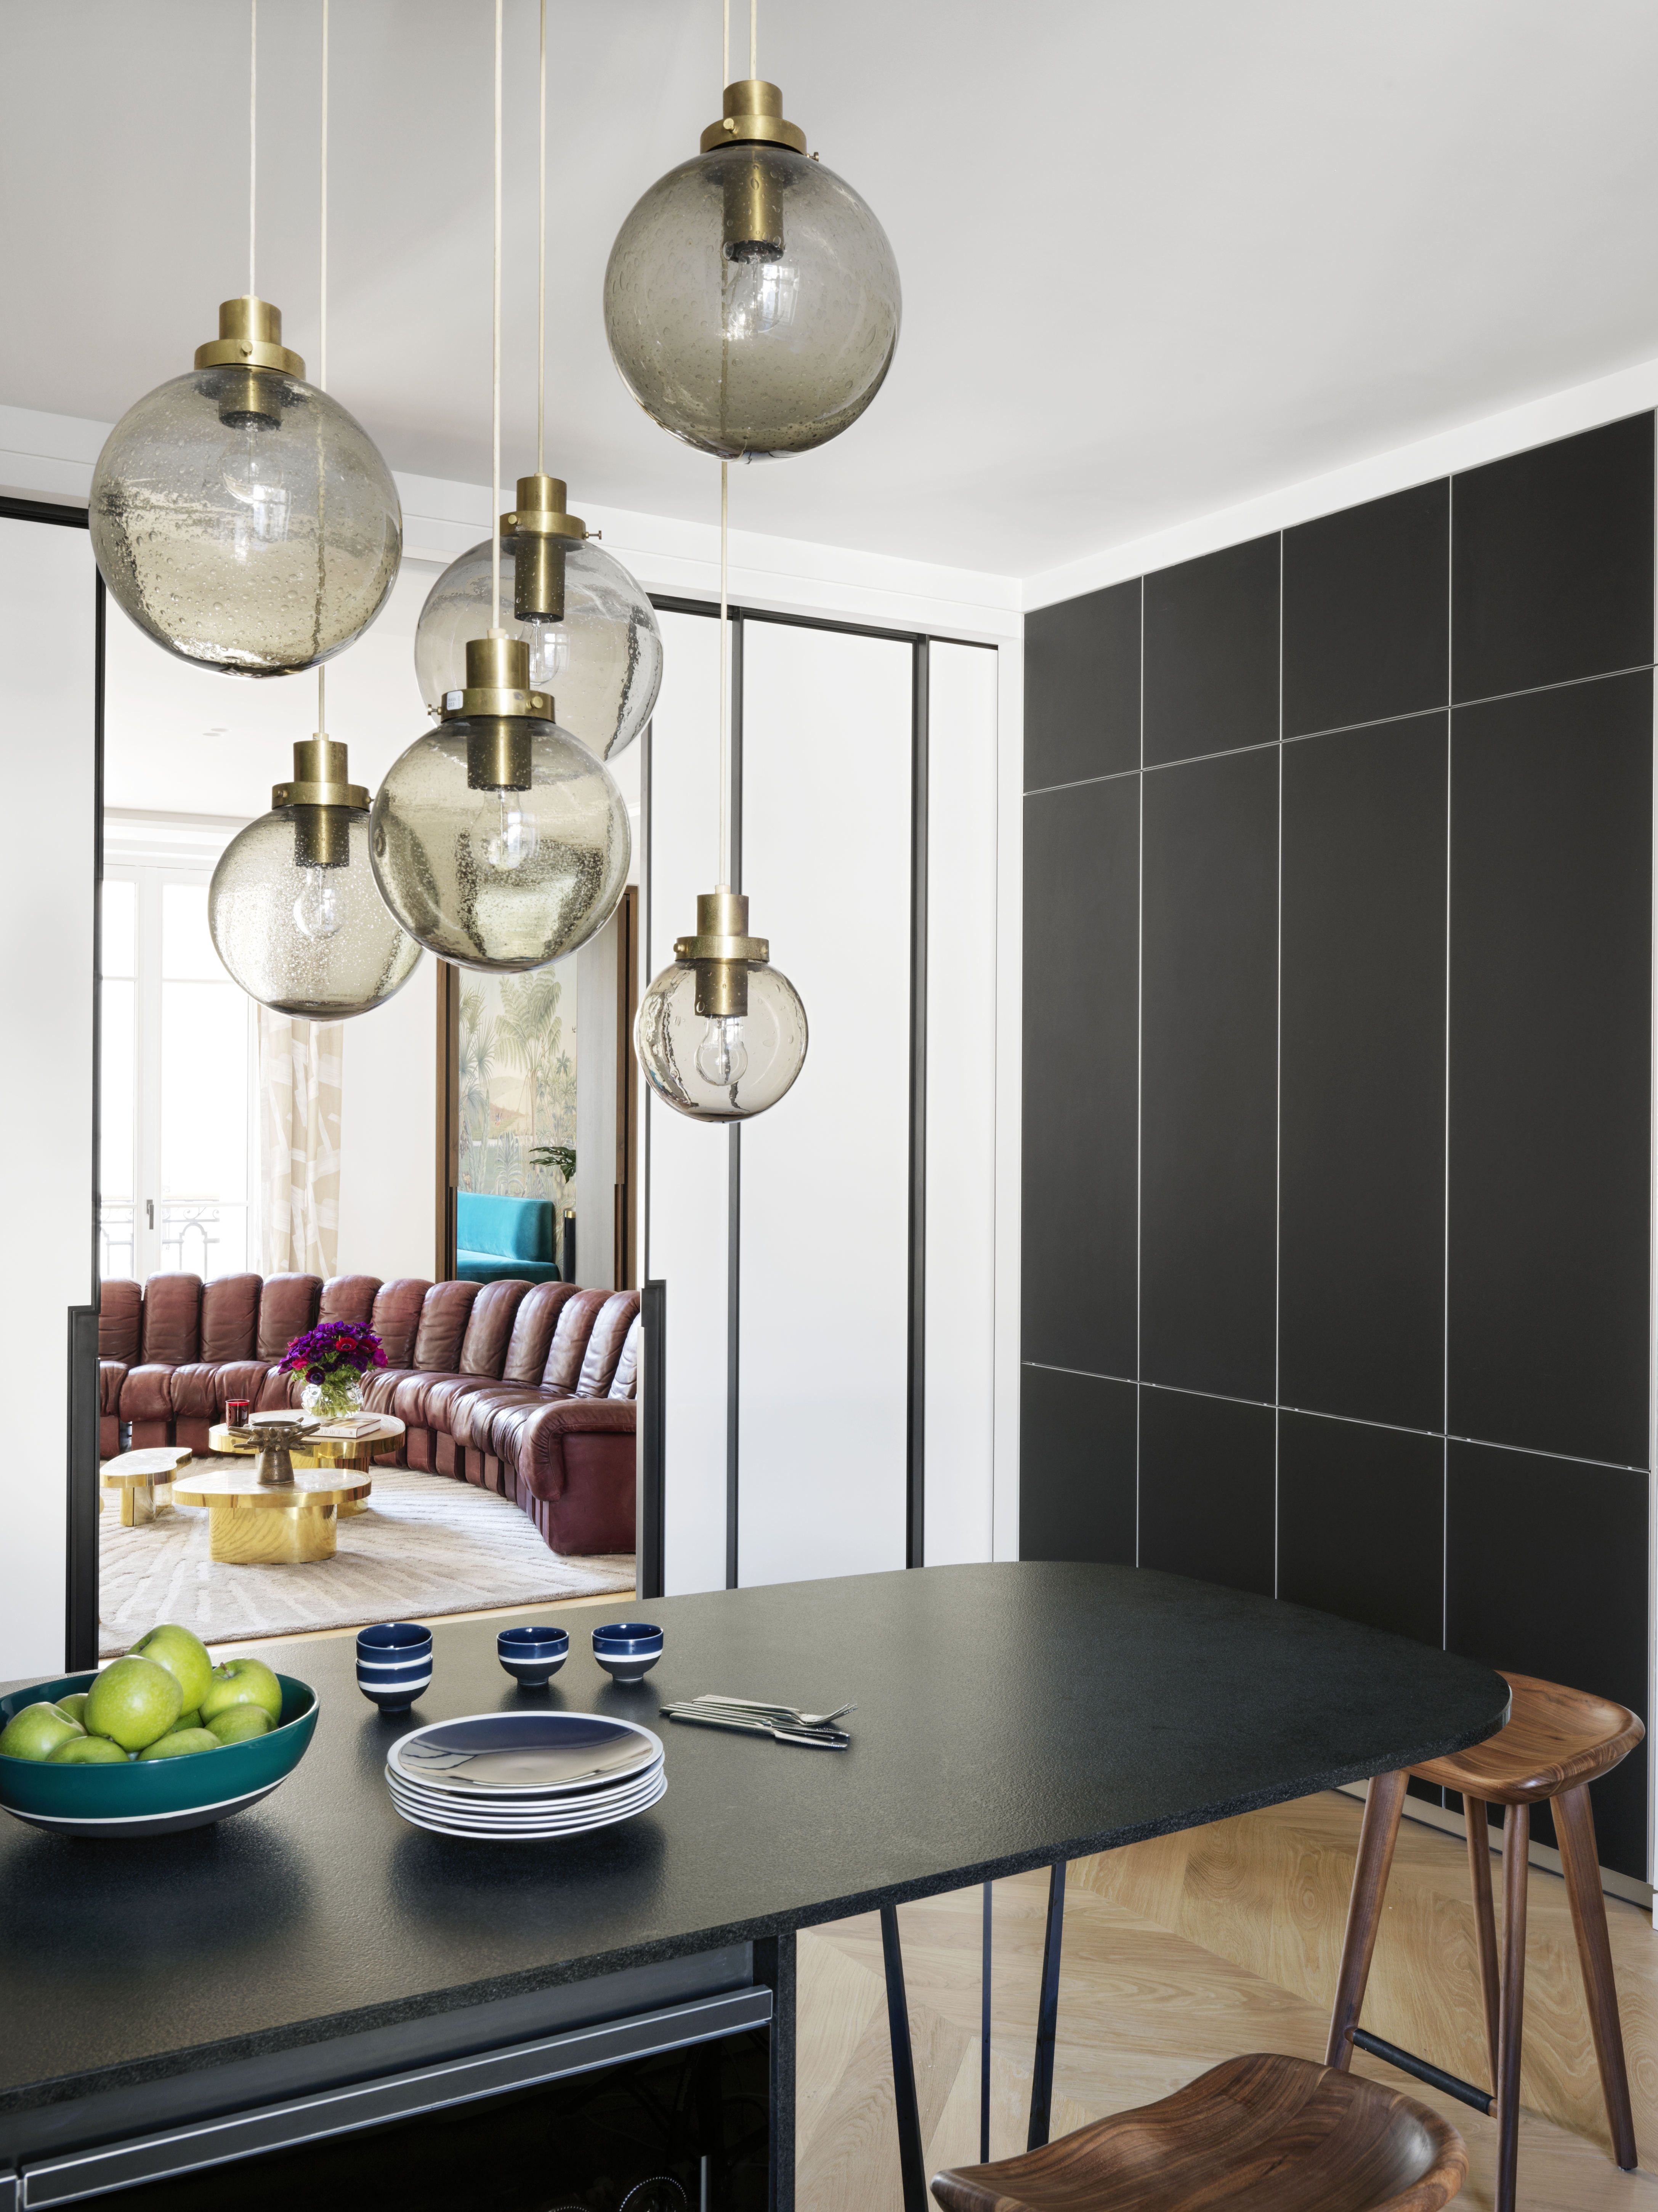 12 Unique Lighting Ideas - Best Lighting for Every Room